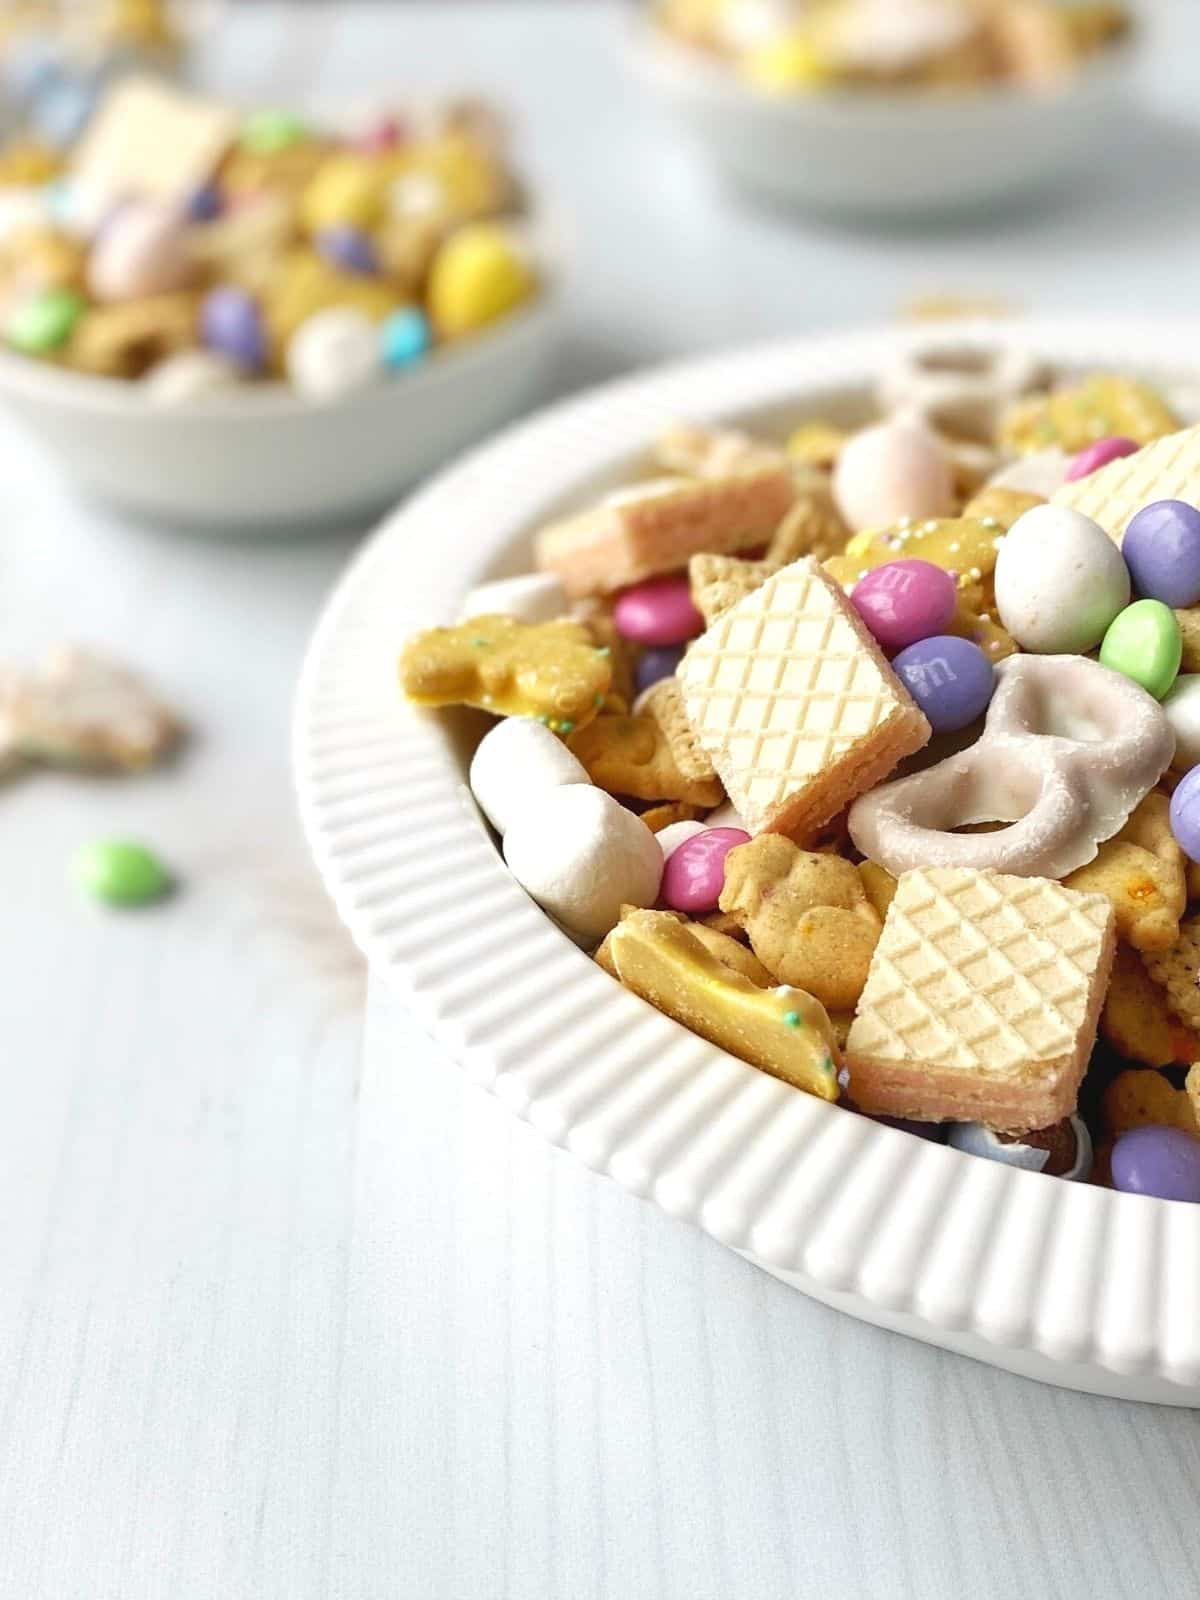 side view of dish of snack mix